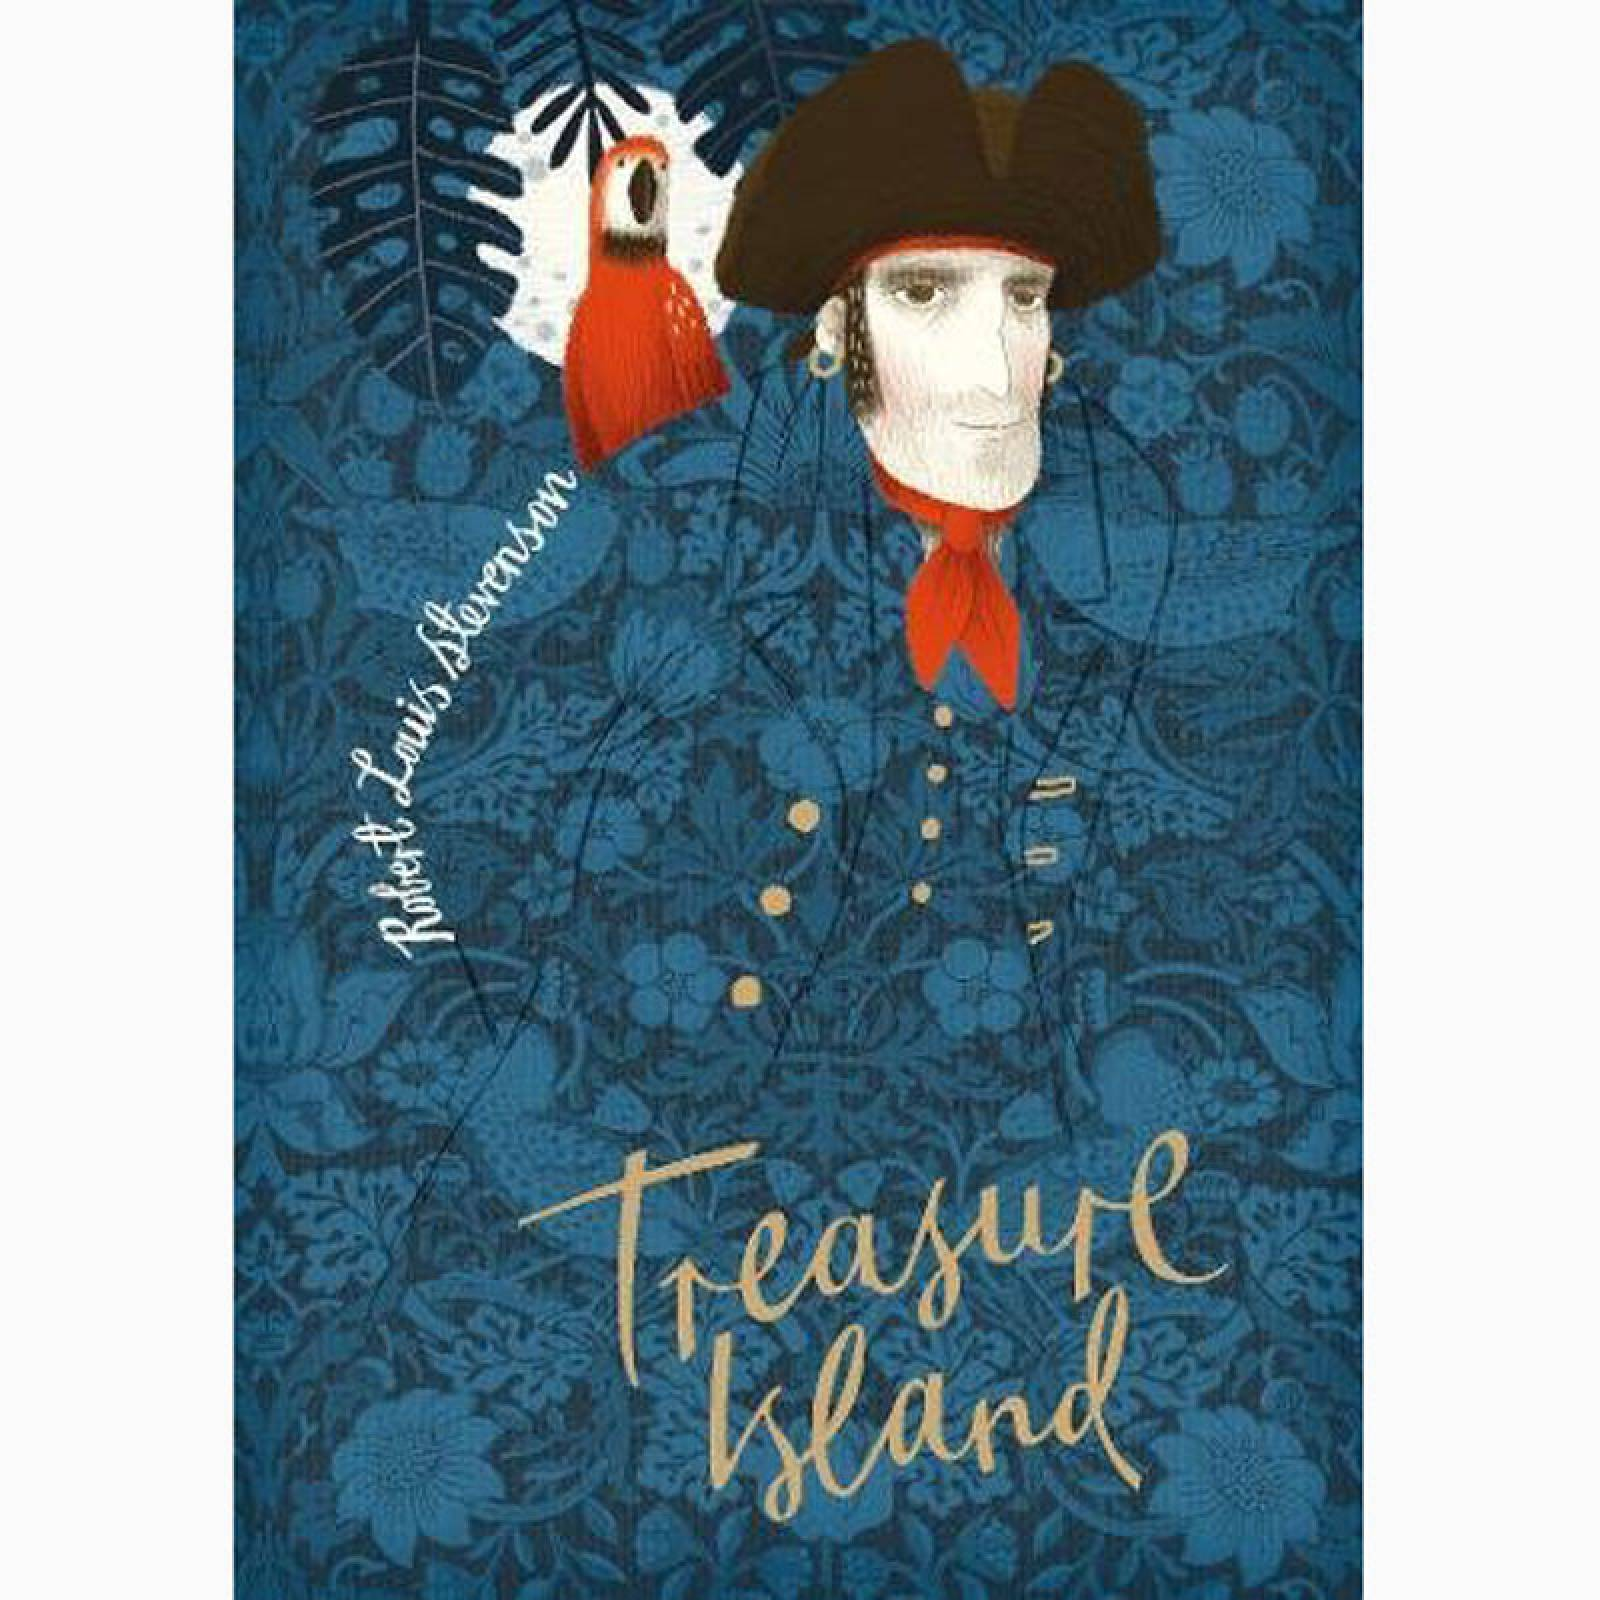 Treasure Island - Hardback Book (V&A Edition)